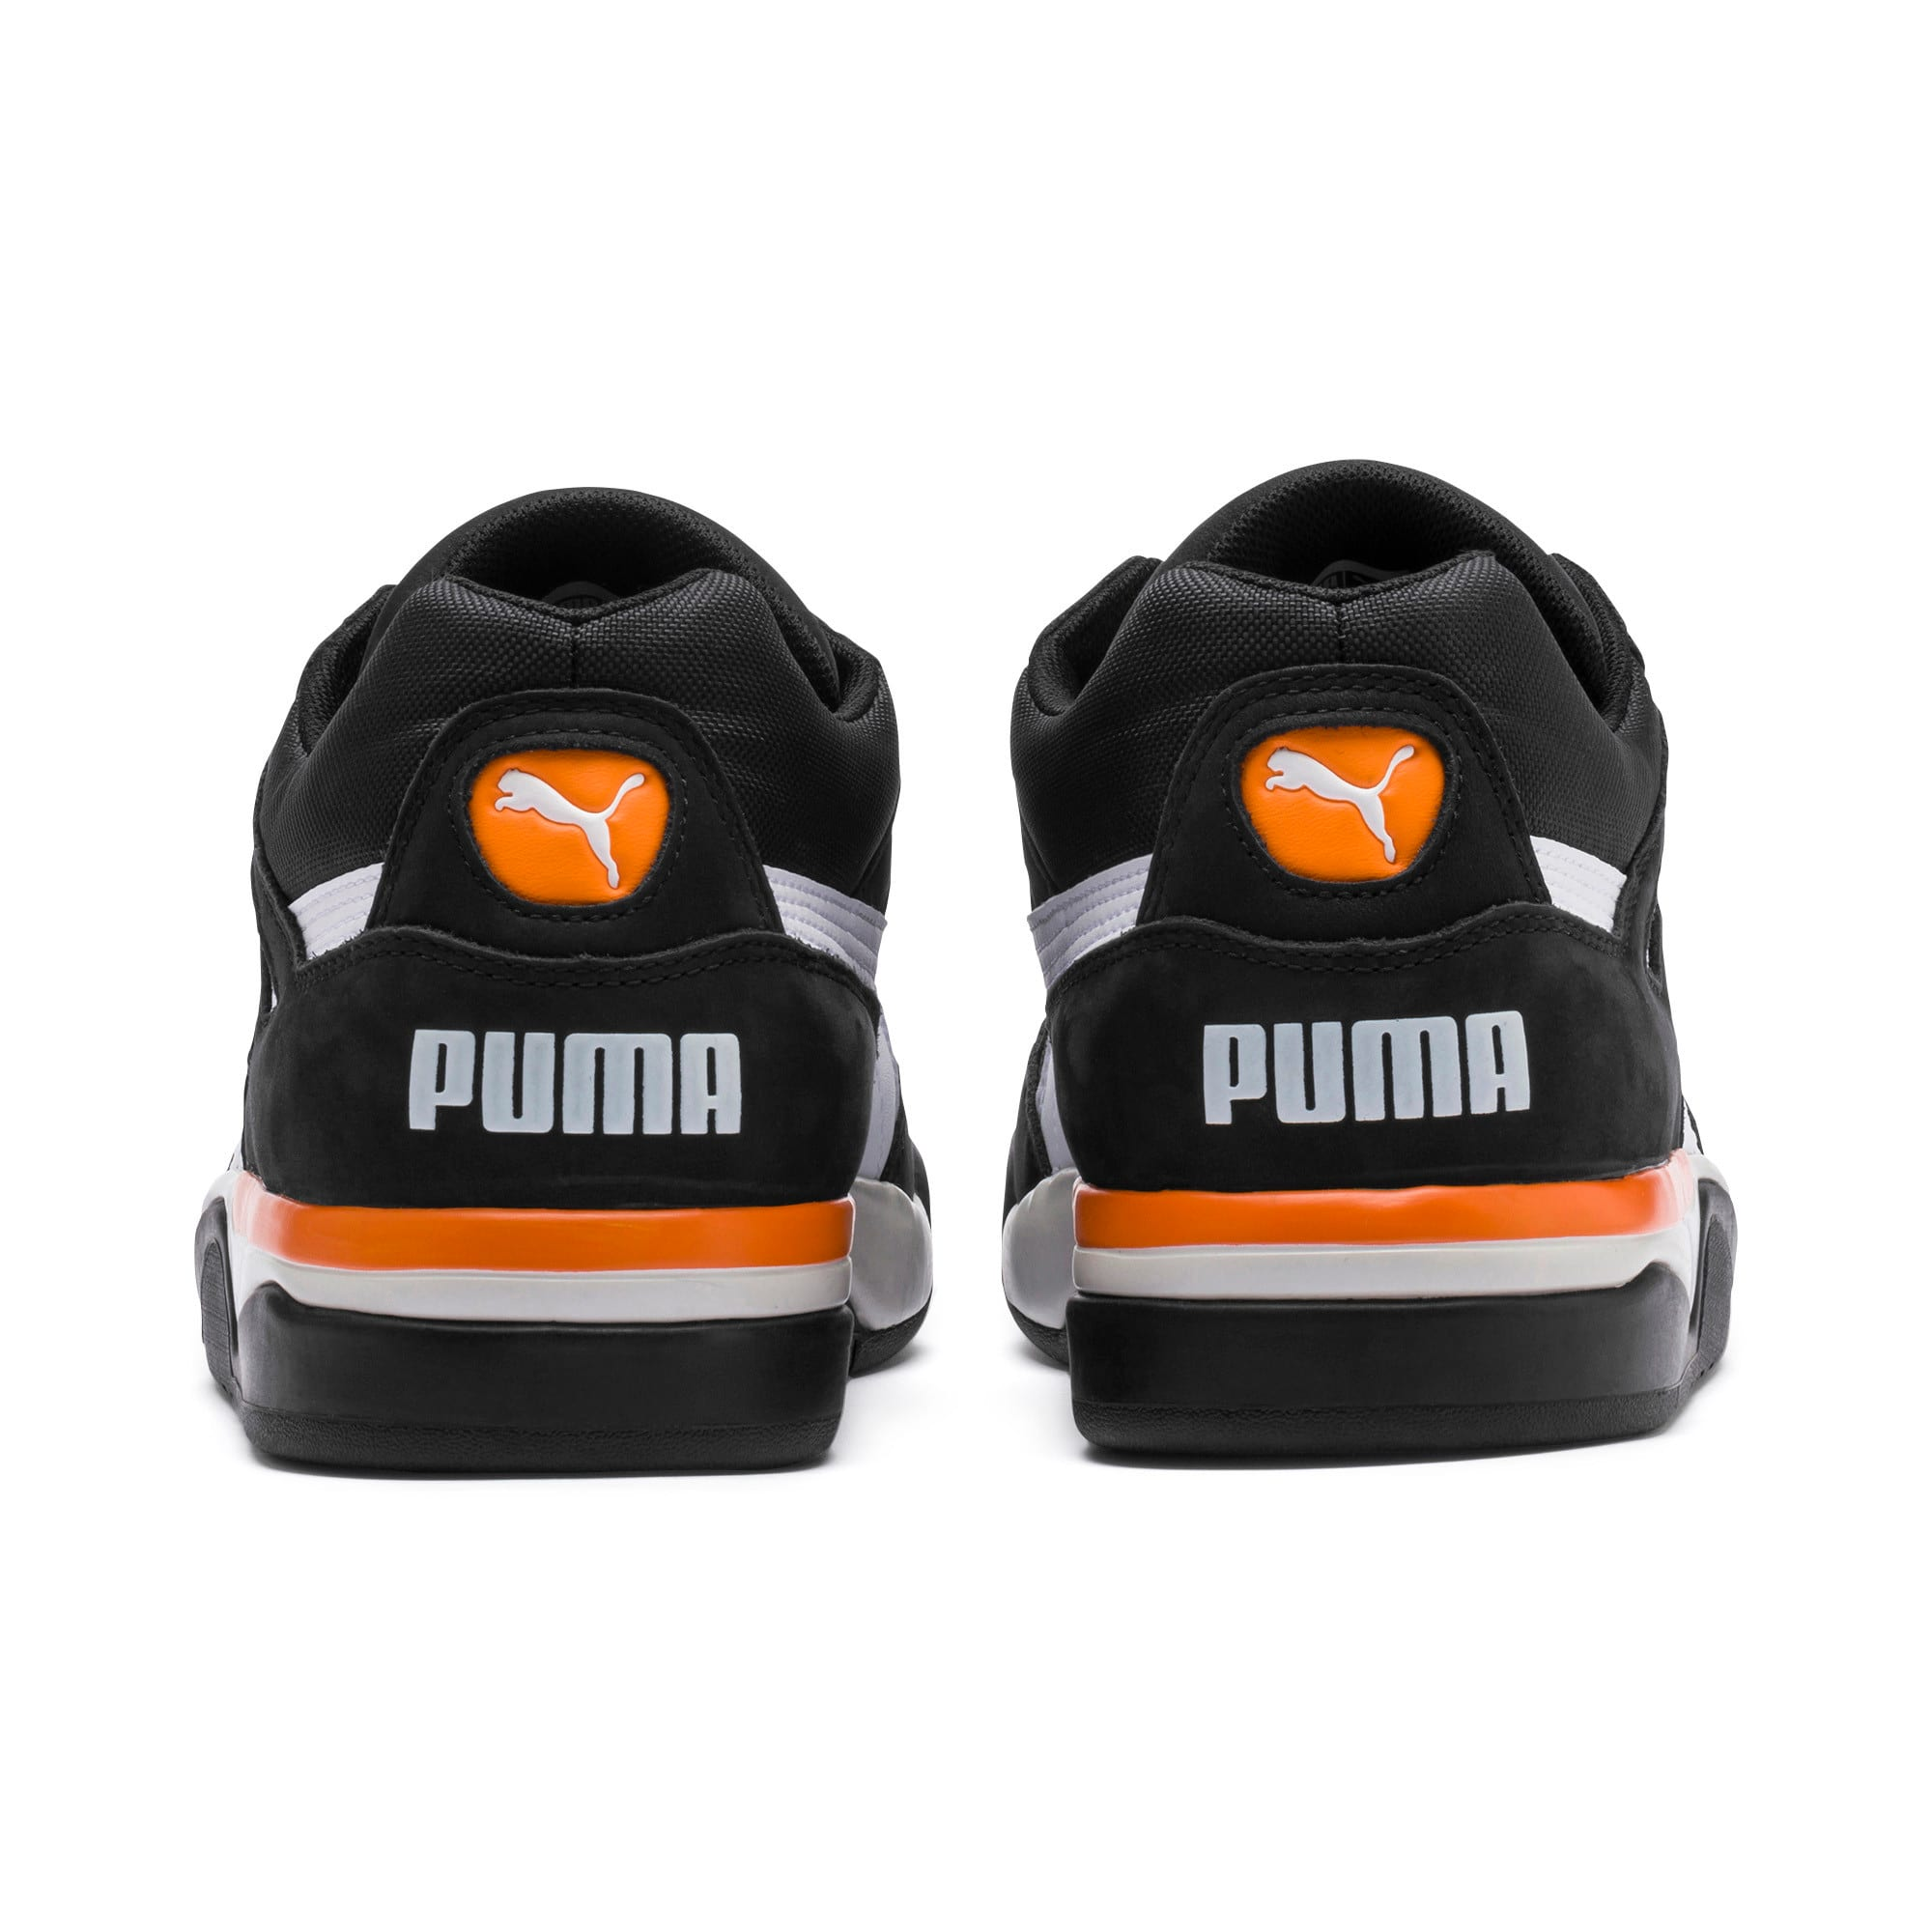 Thumbnail 3 van Palace Guard Bad Boys sportschoenen, Puma Black-Puma White-, medium